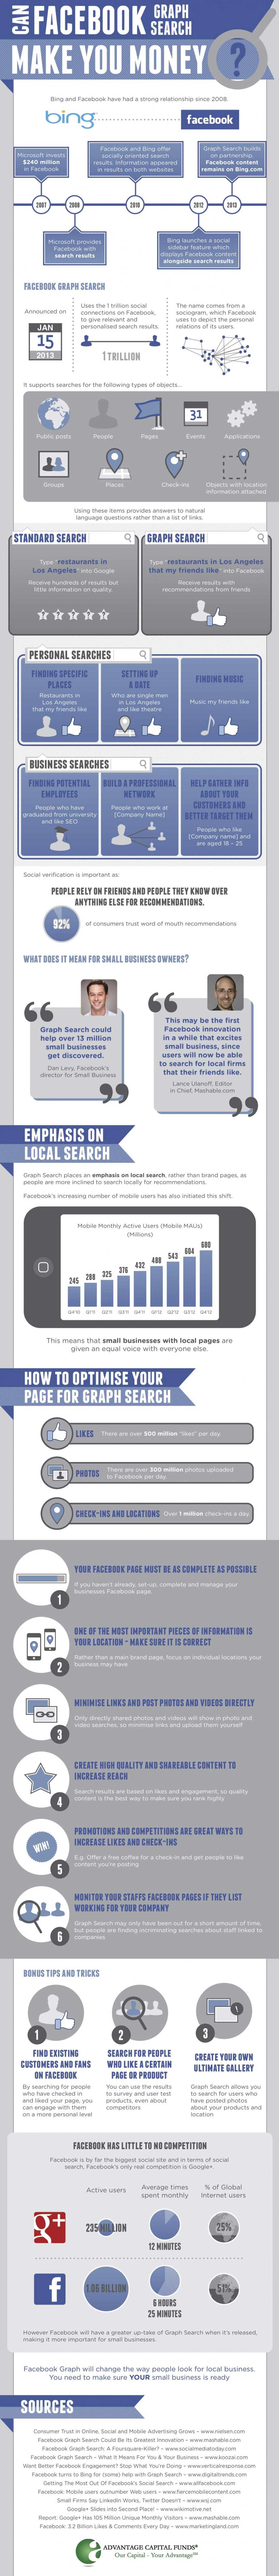 Can Facebook Graph Make You Money? Infographic